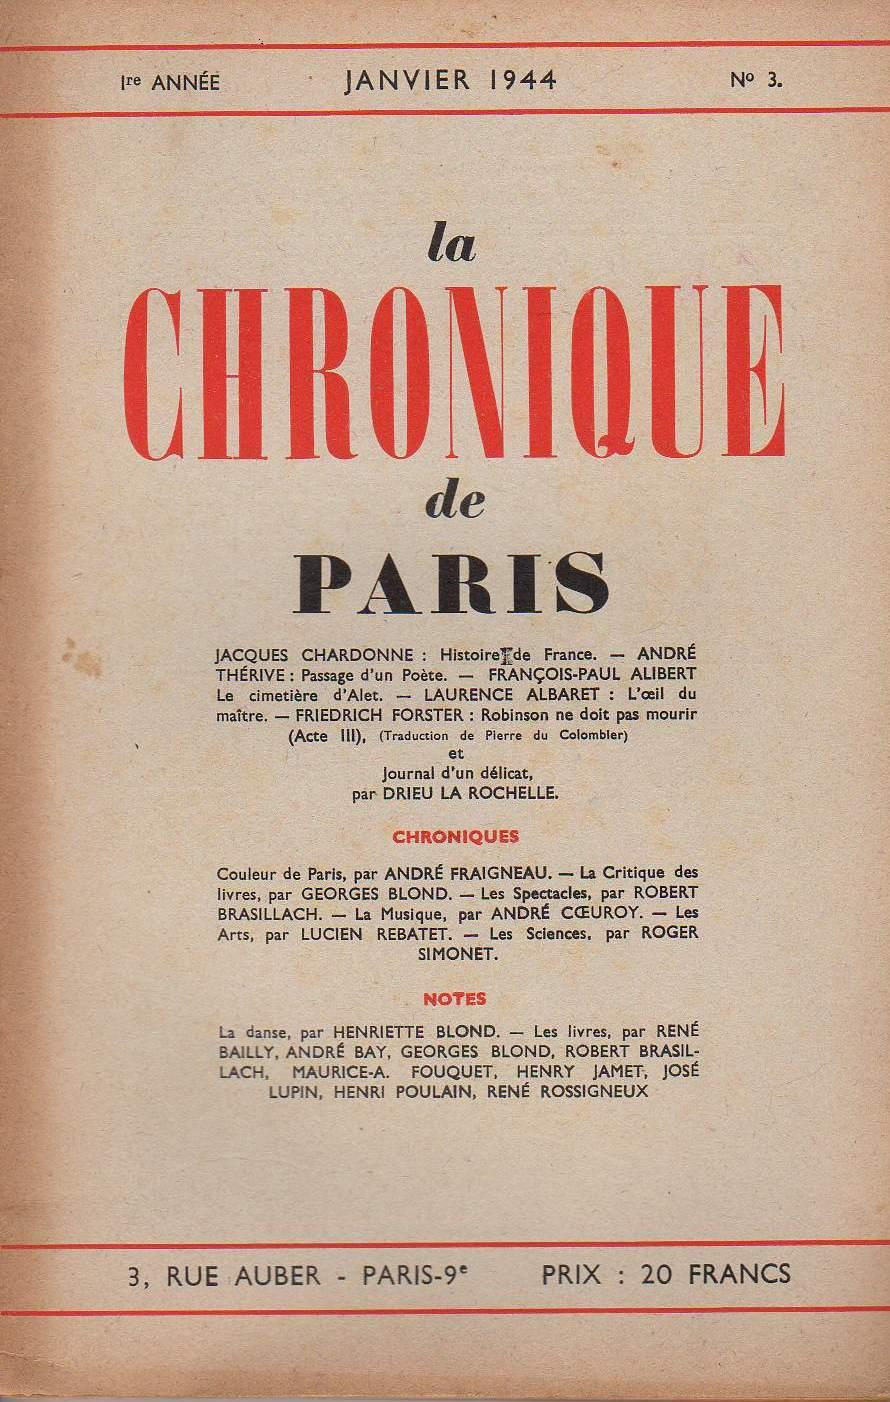 Chronique-de-Paris3.jpg